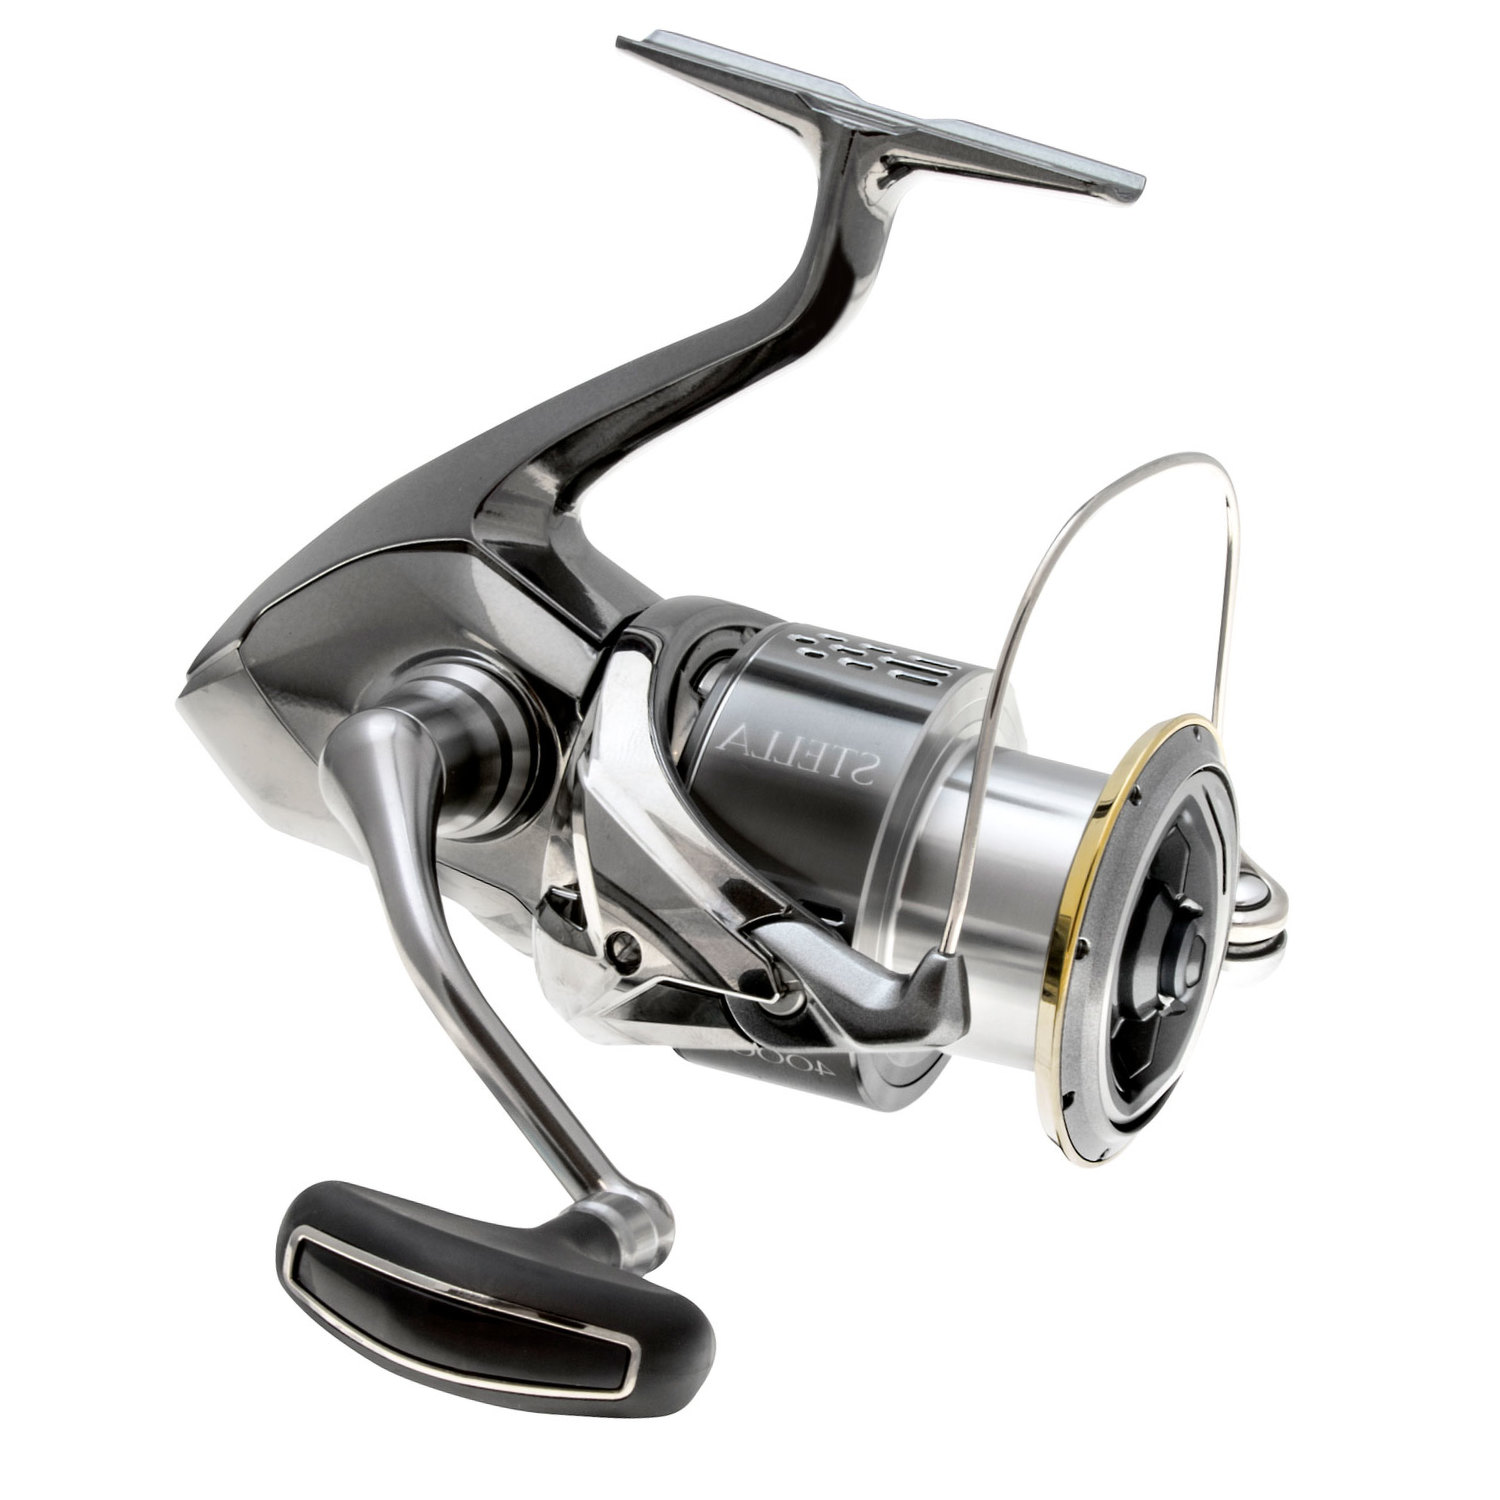 20 Good spinning reels in 2019